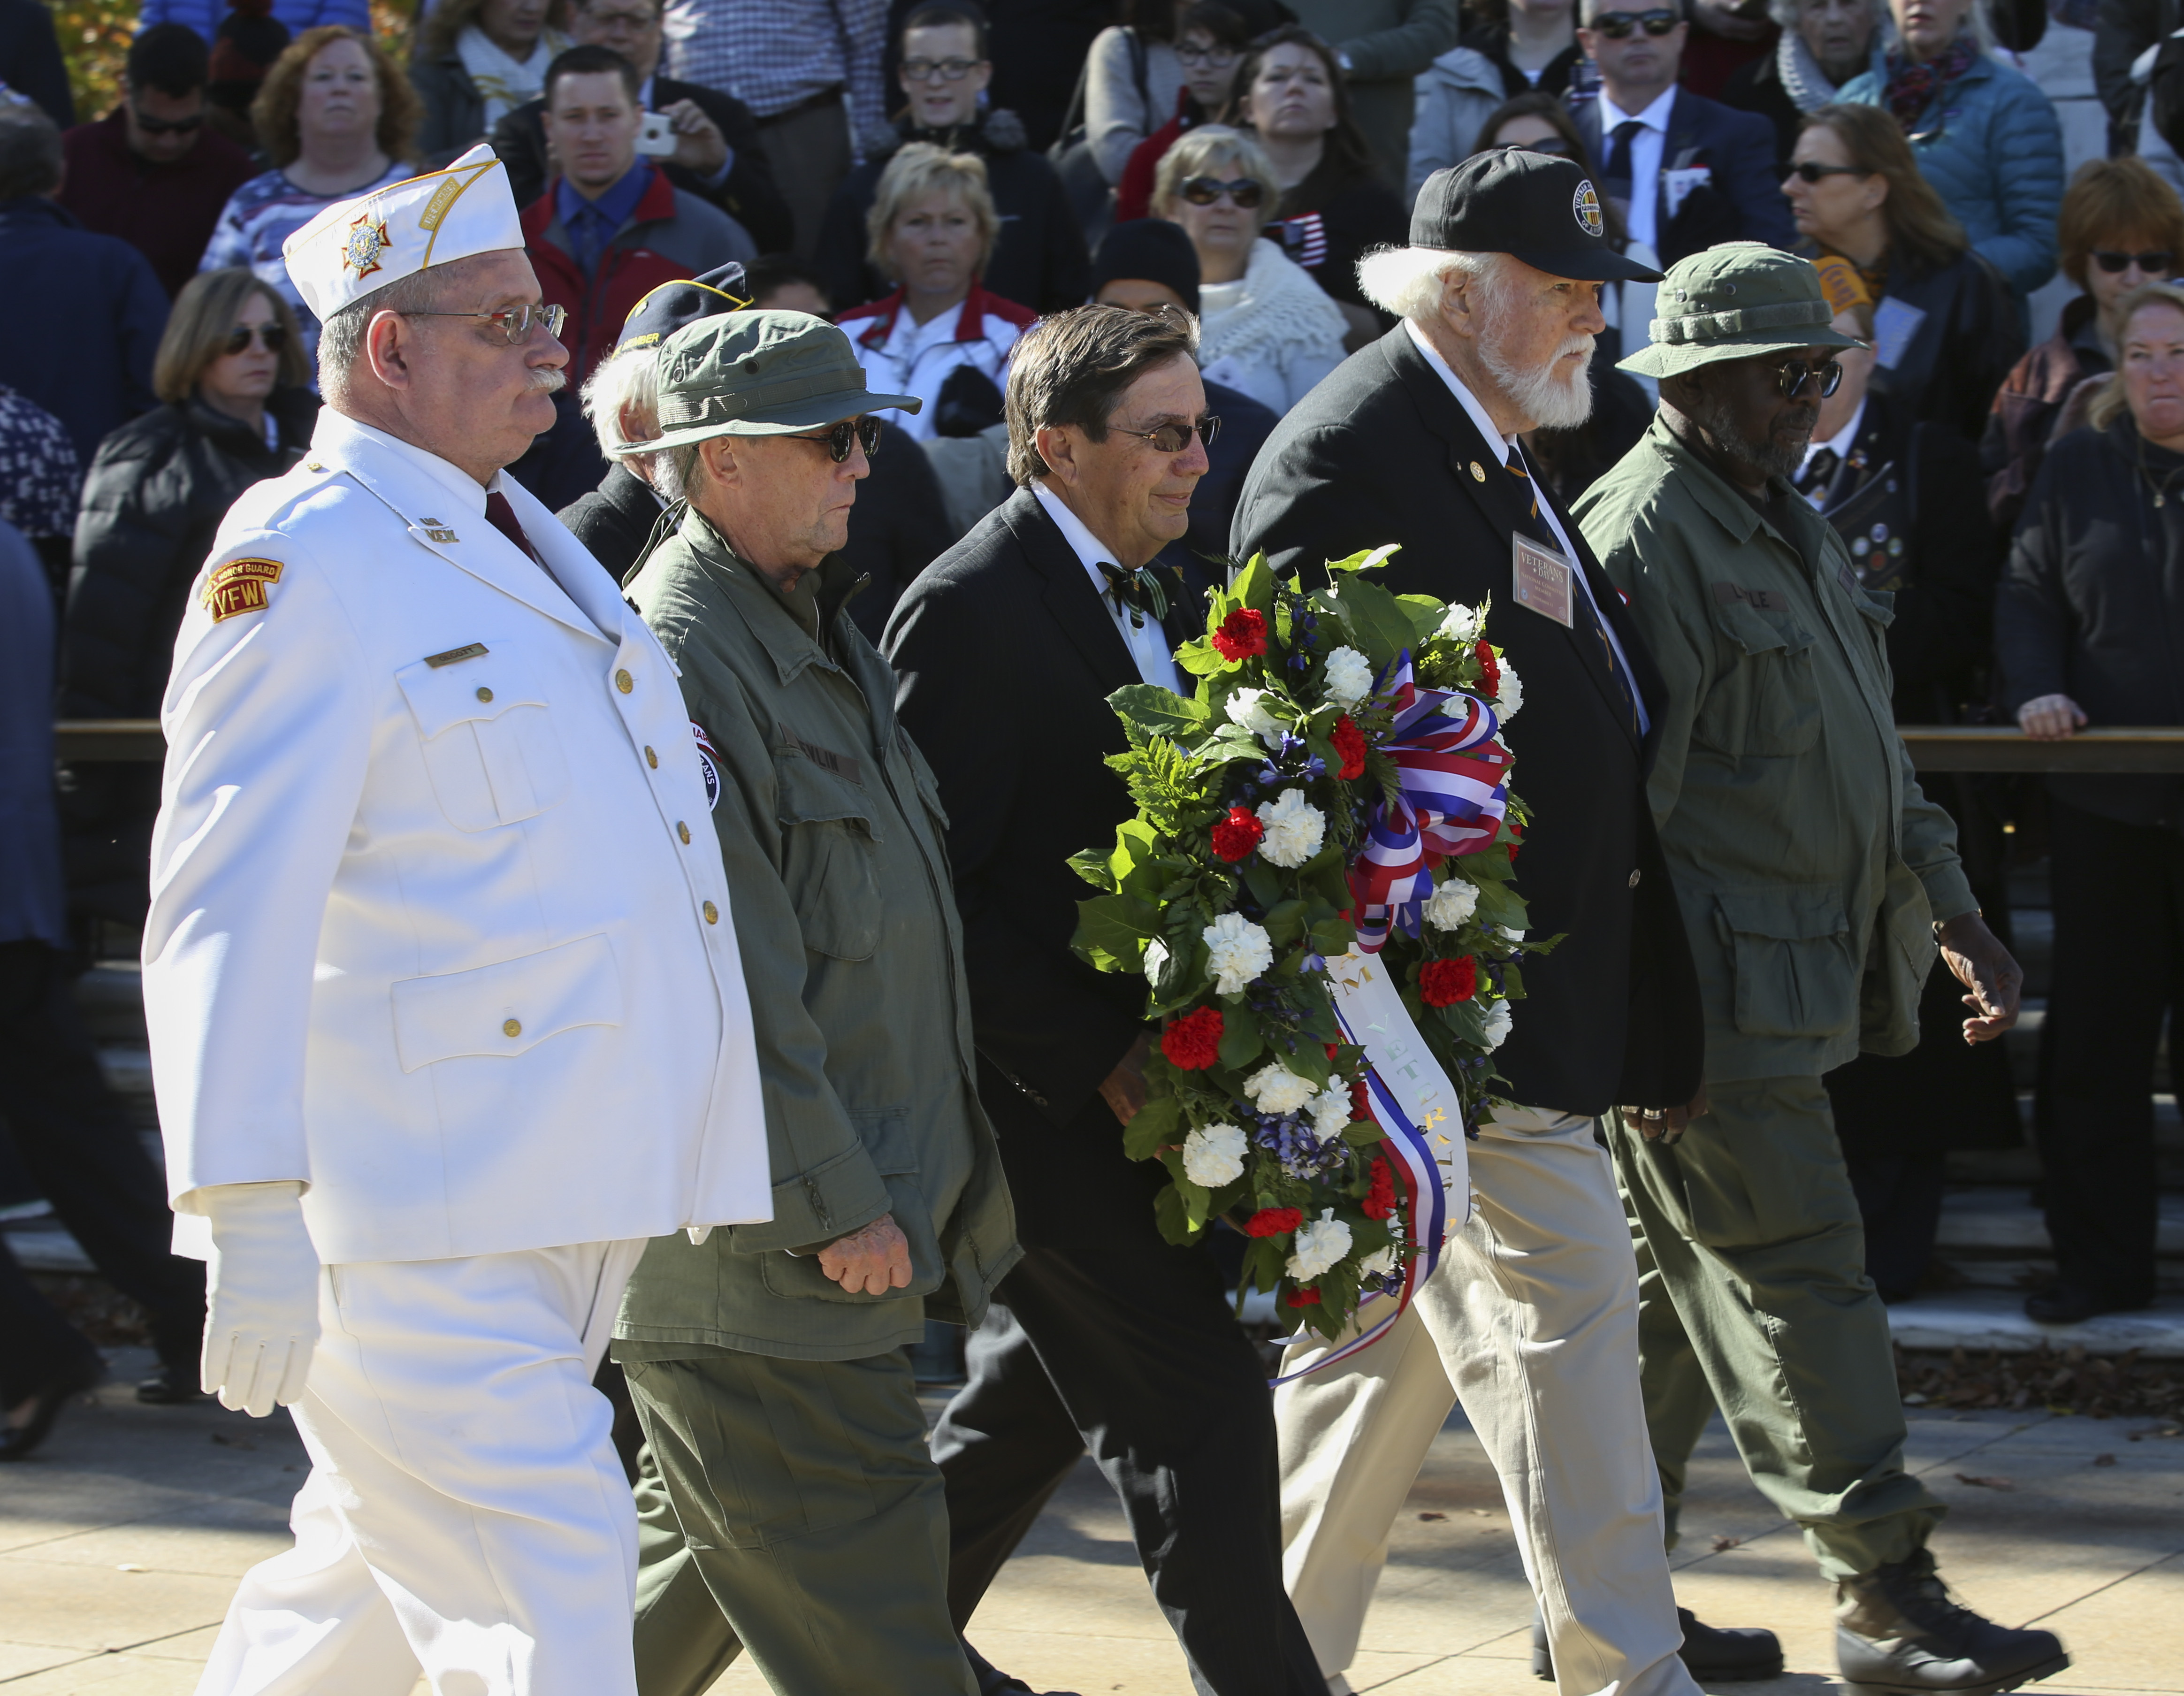 Members of the Vietnam Veterans of America carry a wreath to lay beside the Tomb of the Unknown Soldier at Arlington National Cemetery.